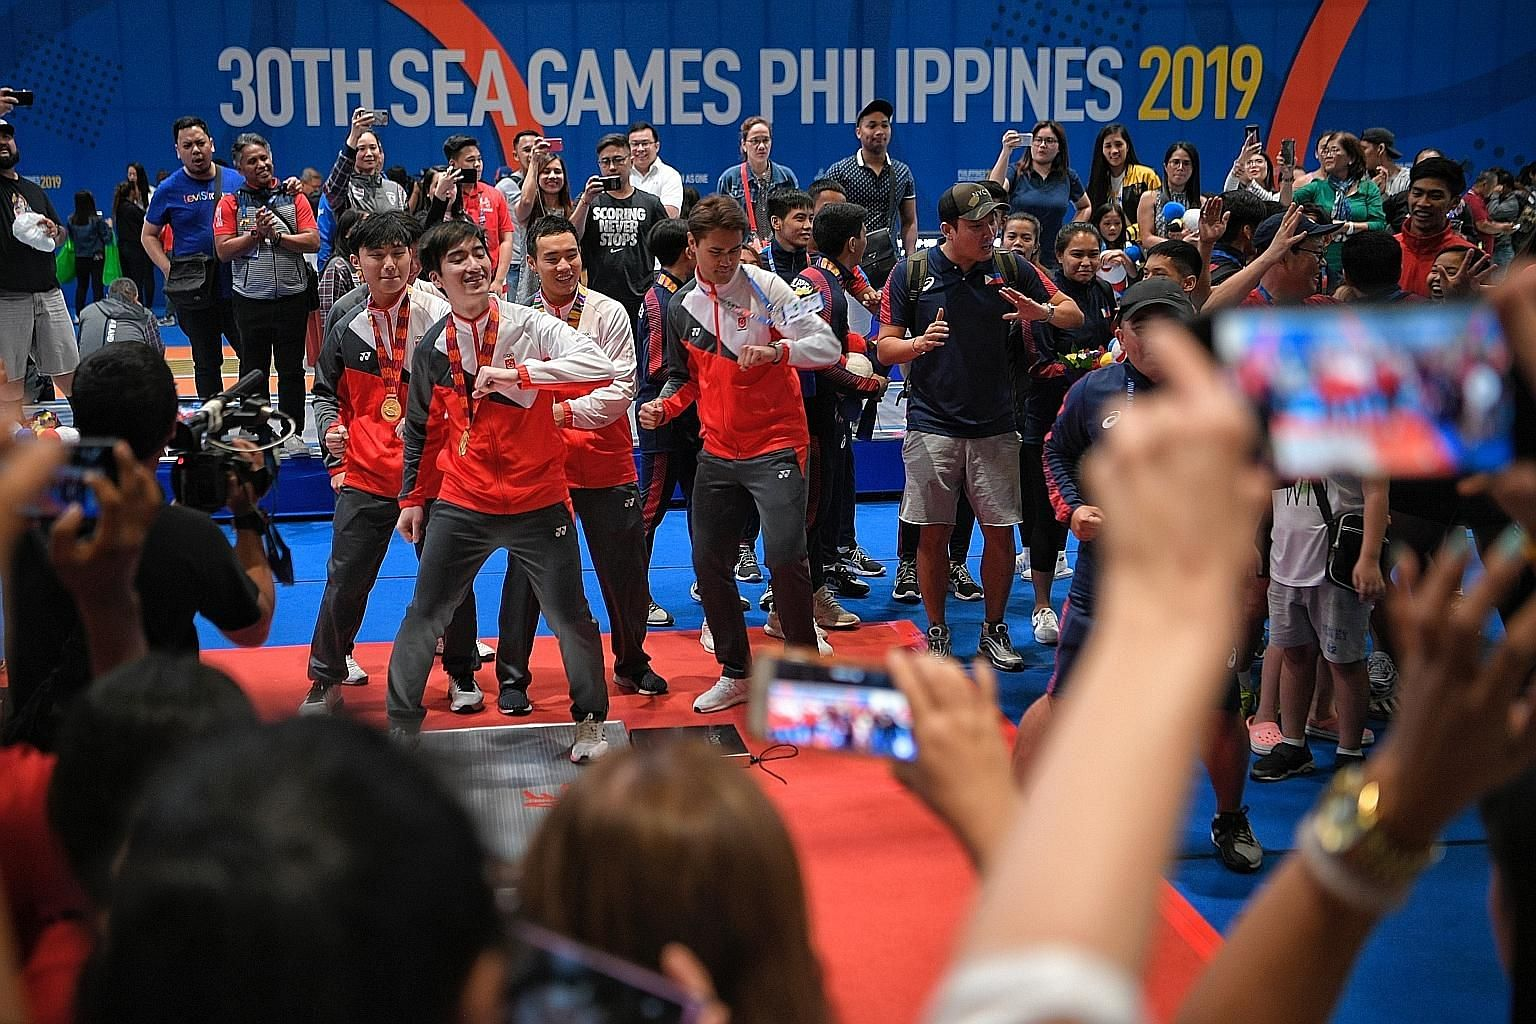 (Above) The Singapore men's foil team getting into the groove with other teams and fans after the medal presentation at Manila's World Trade Centre yesterday. Left: Joshua Lim roaring after a good showing.